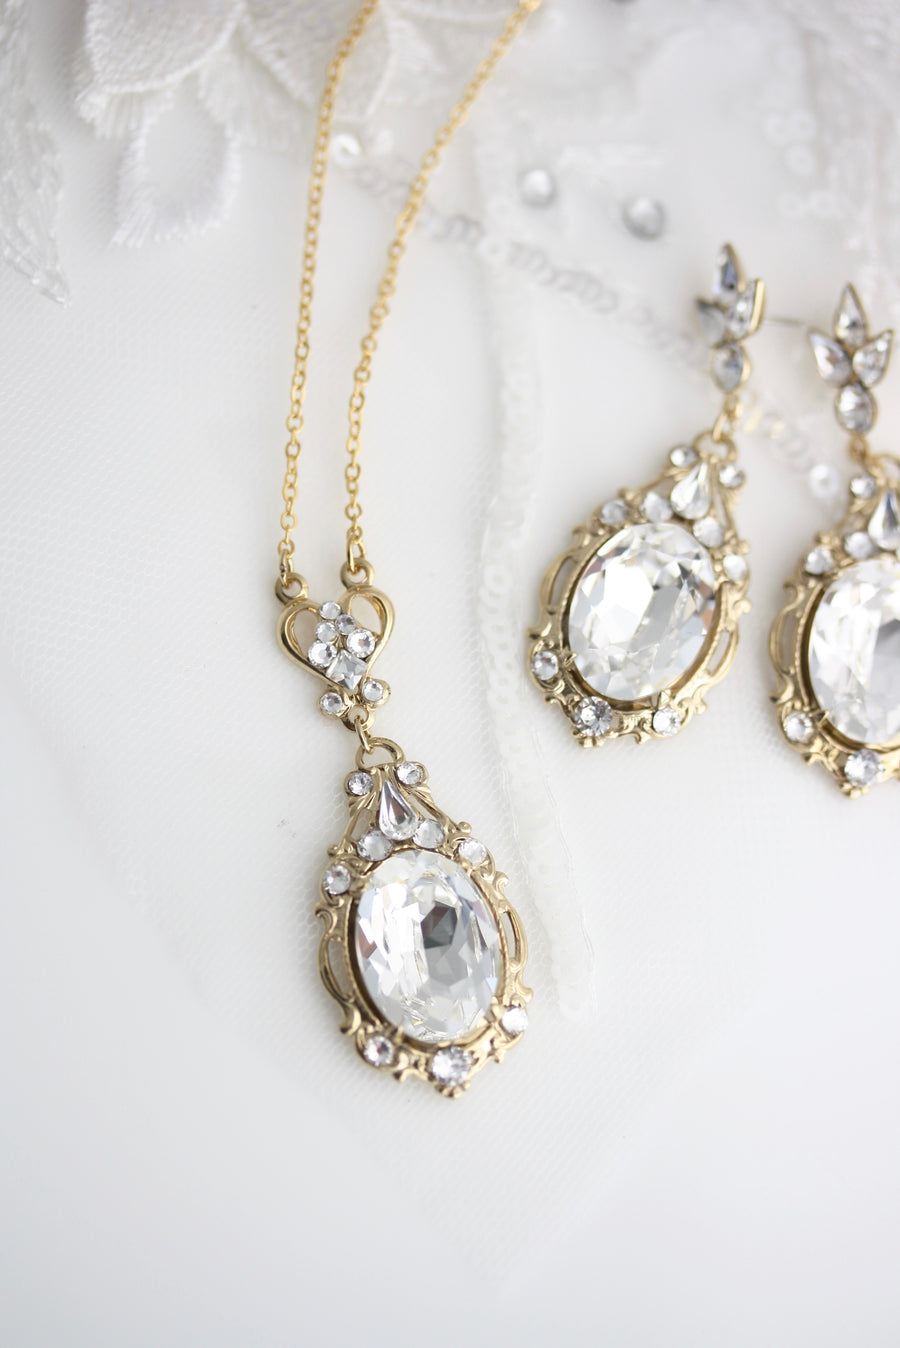 Ryan Crystal Earrings and Necklace Set - Lulu Splendor